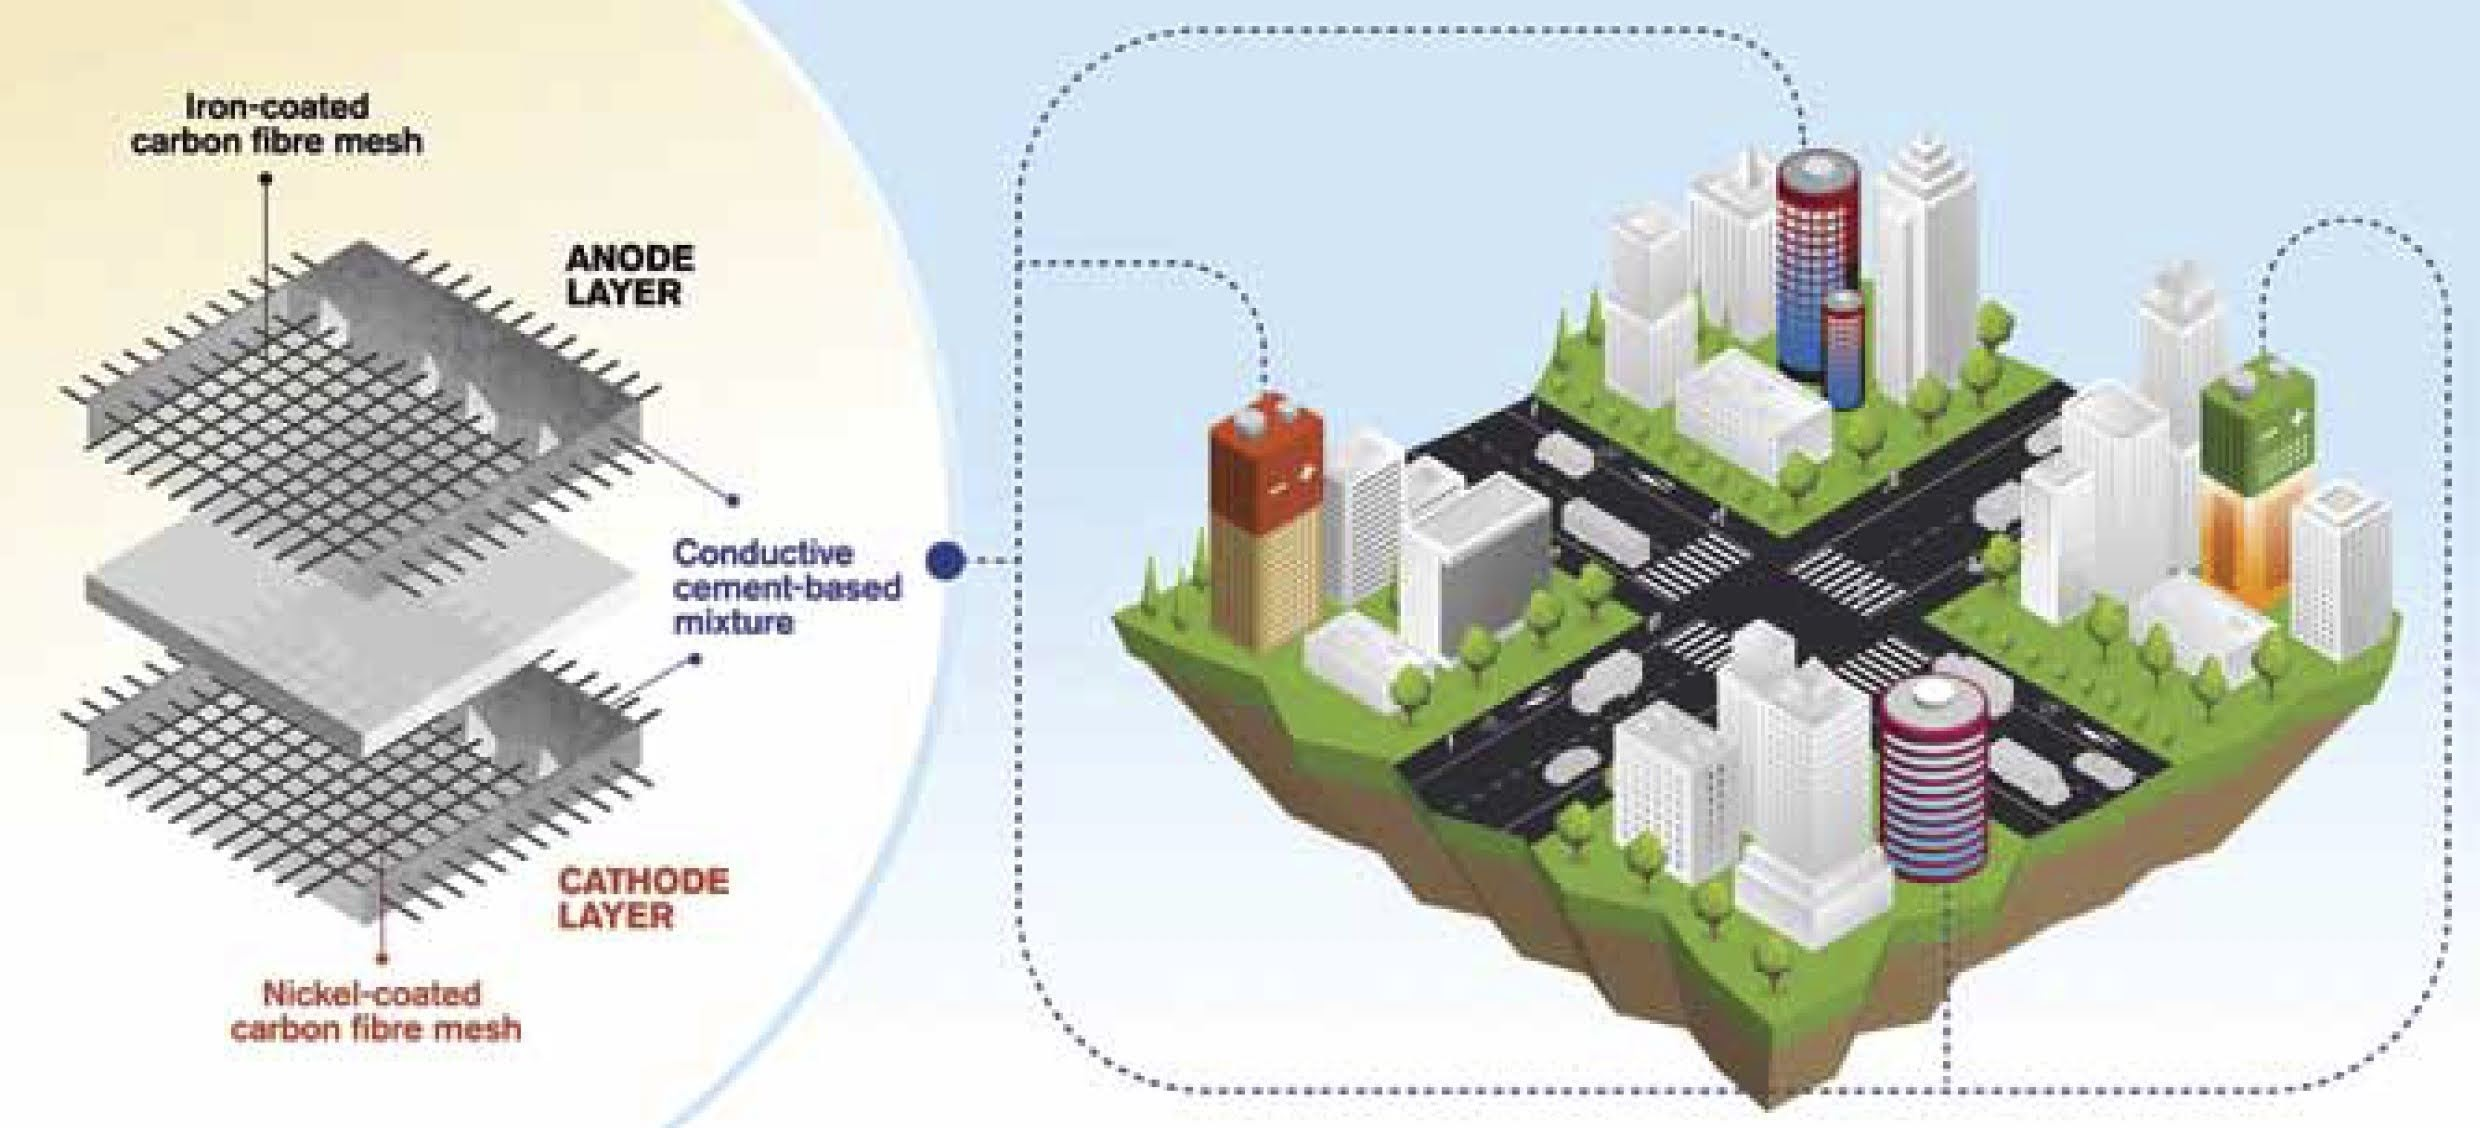 Rechargeable cement-based batteries utilised as functional concrete